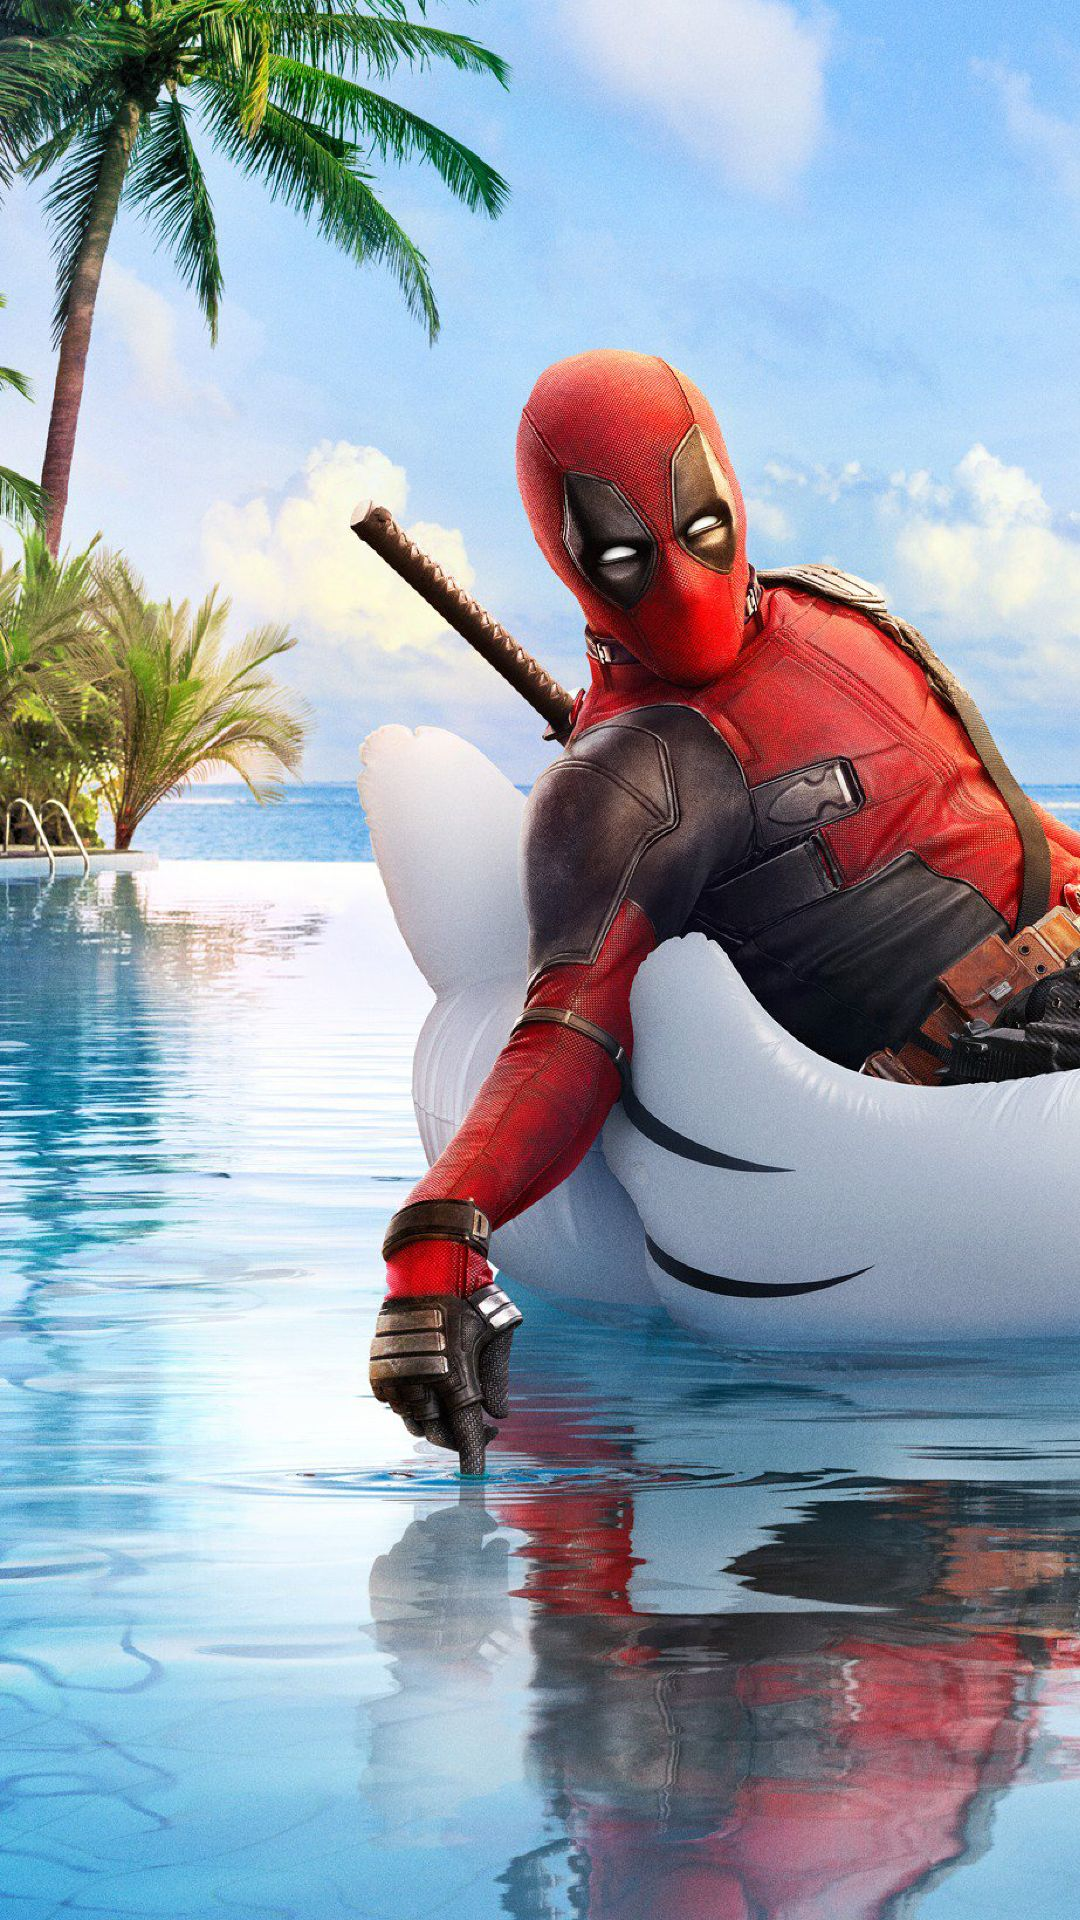 1080x1920 1080x1920 Deadpool 2 Funny Poster Iphone 7, 6s, 6 Plus and ...